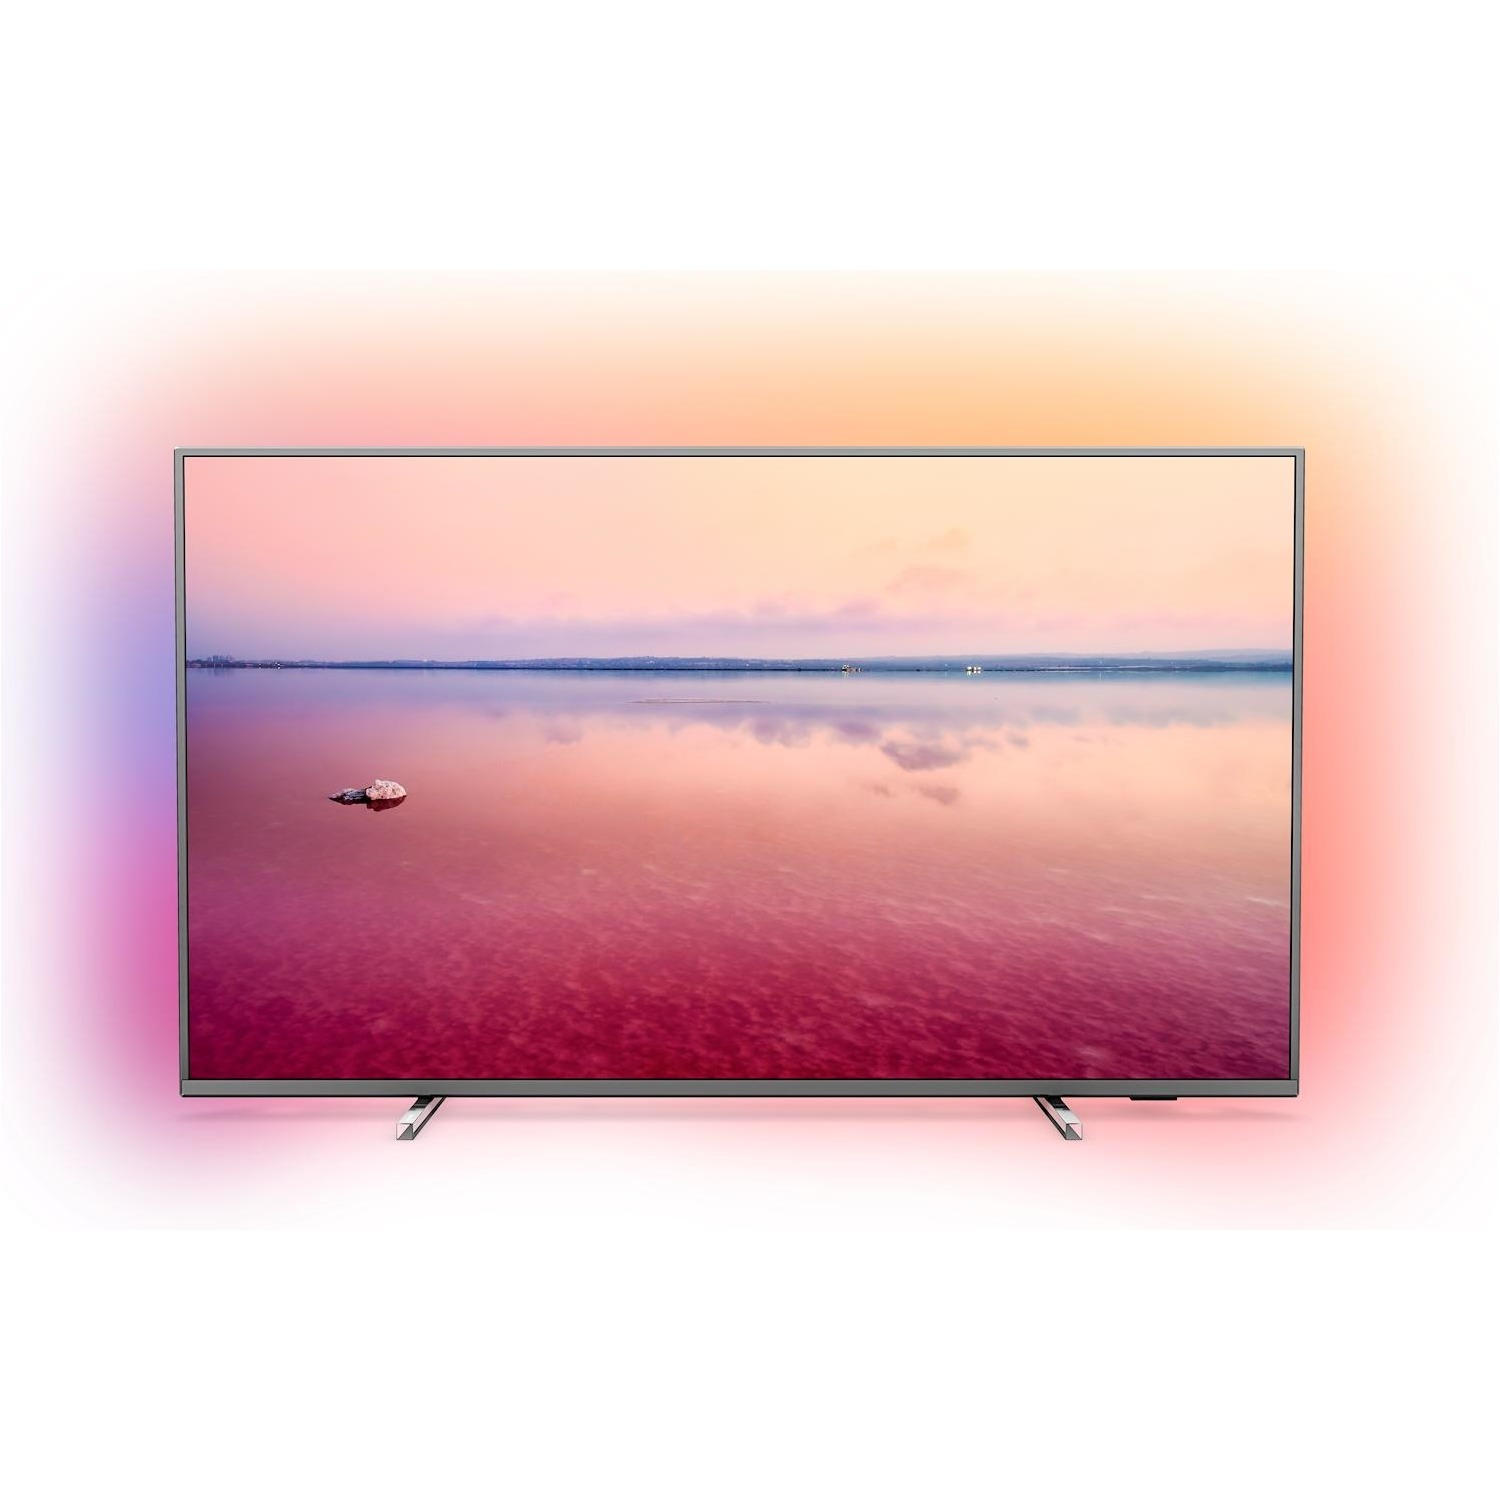 Immagine per TV LED Smart 4K UHD Philips 50PUS6754 da DIMOStore